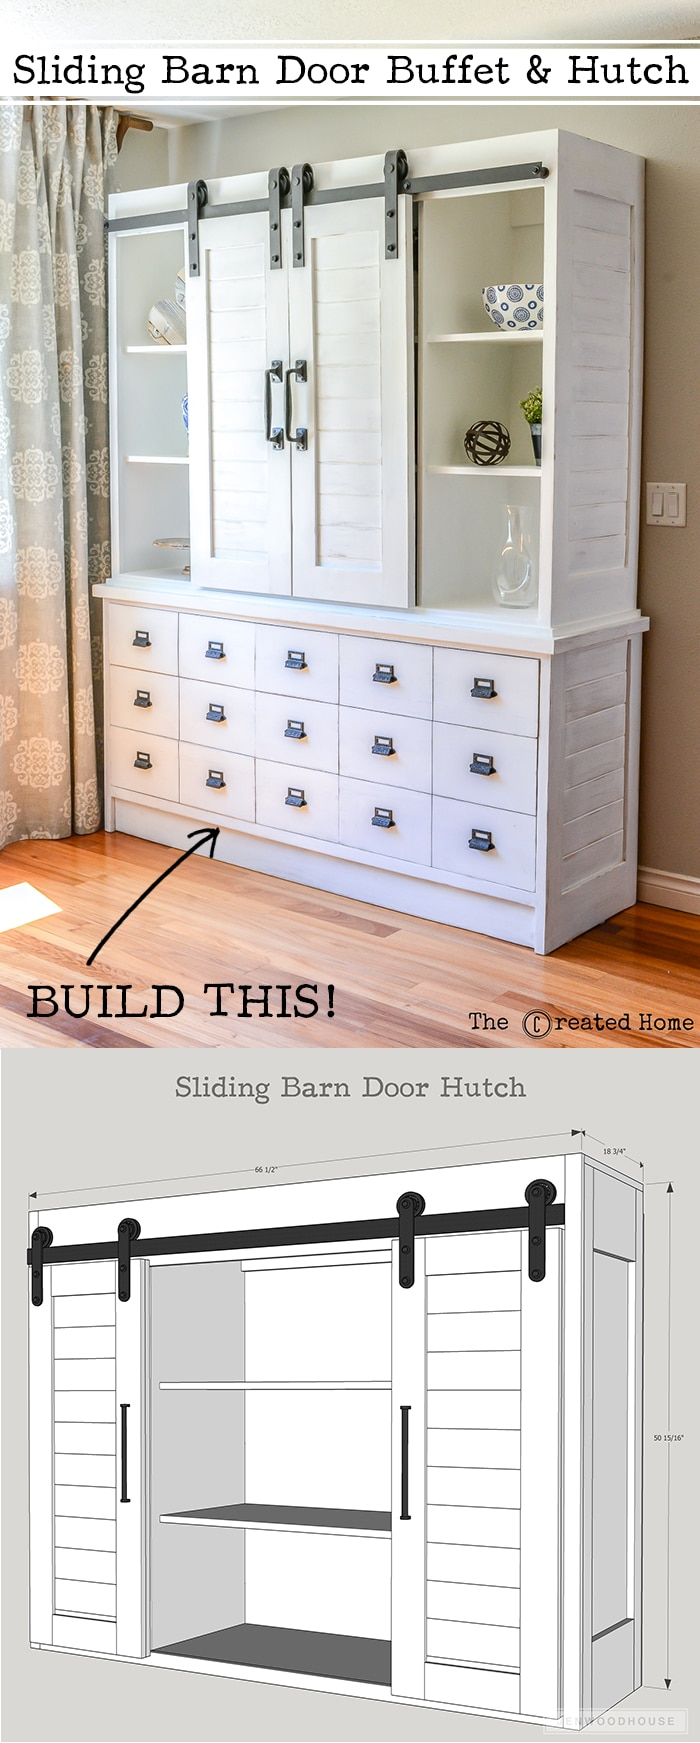 diy farmhouse sliding barn door hutch. Black Bedroom Furniture Sets. Home Design Ideas